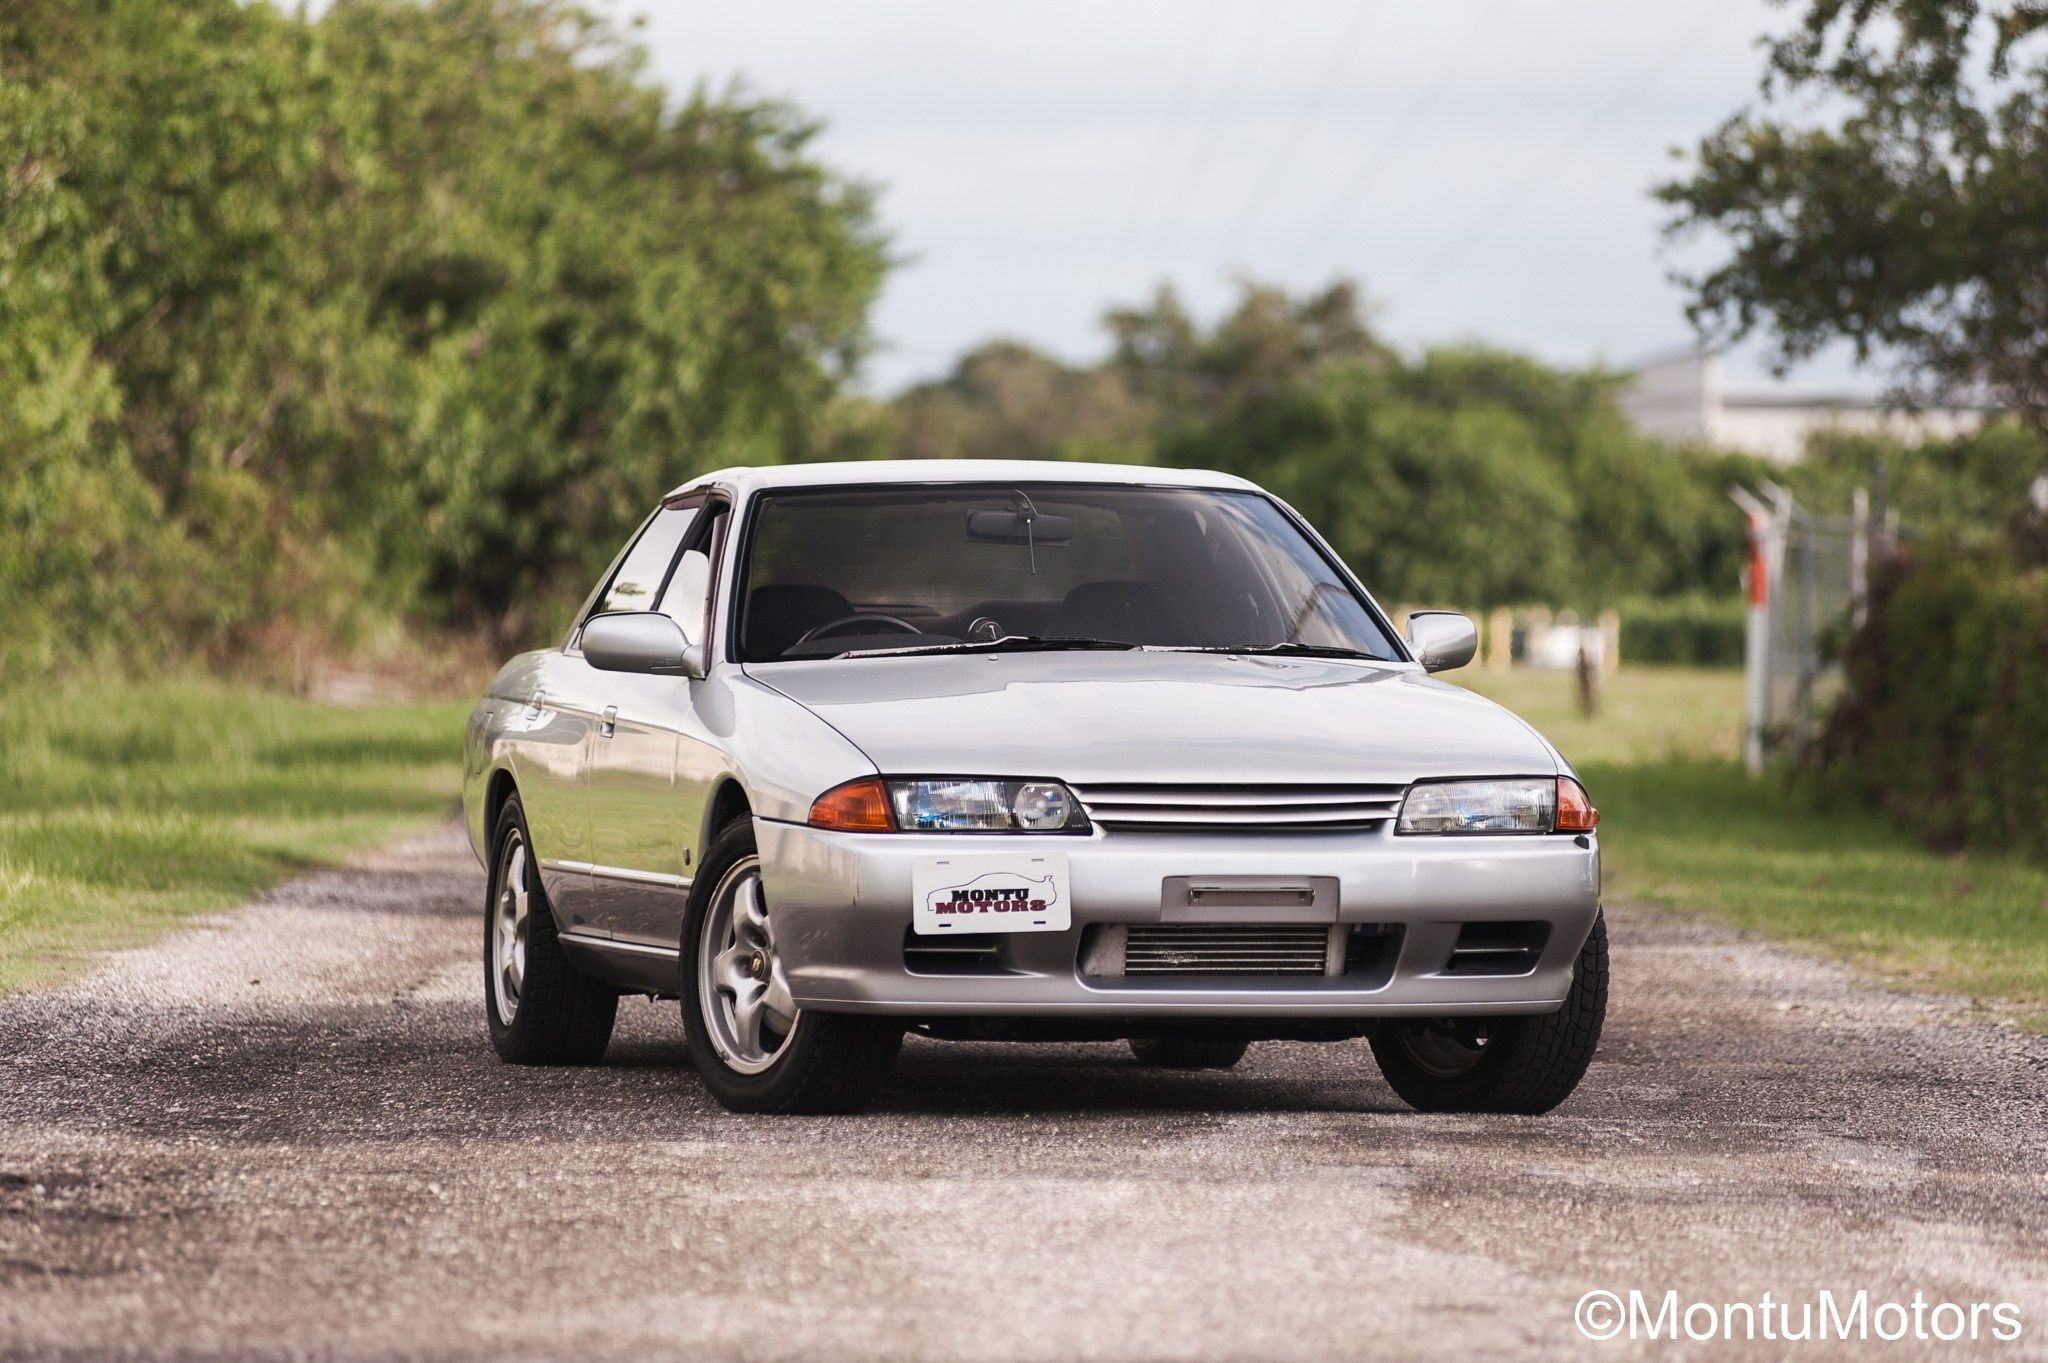 FOR SALE: 1991 NISSAN SKYLINE GTS-4 #MontuMotors 2.3l Stroker motor |  RB25DET Turbo | FMIC | Coupe Taillight Conversion | R32 GTR hood |  Aftermarket Bumper ...